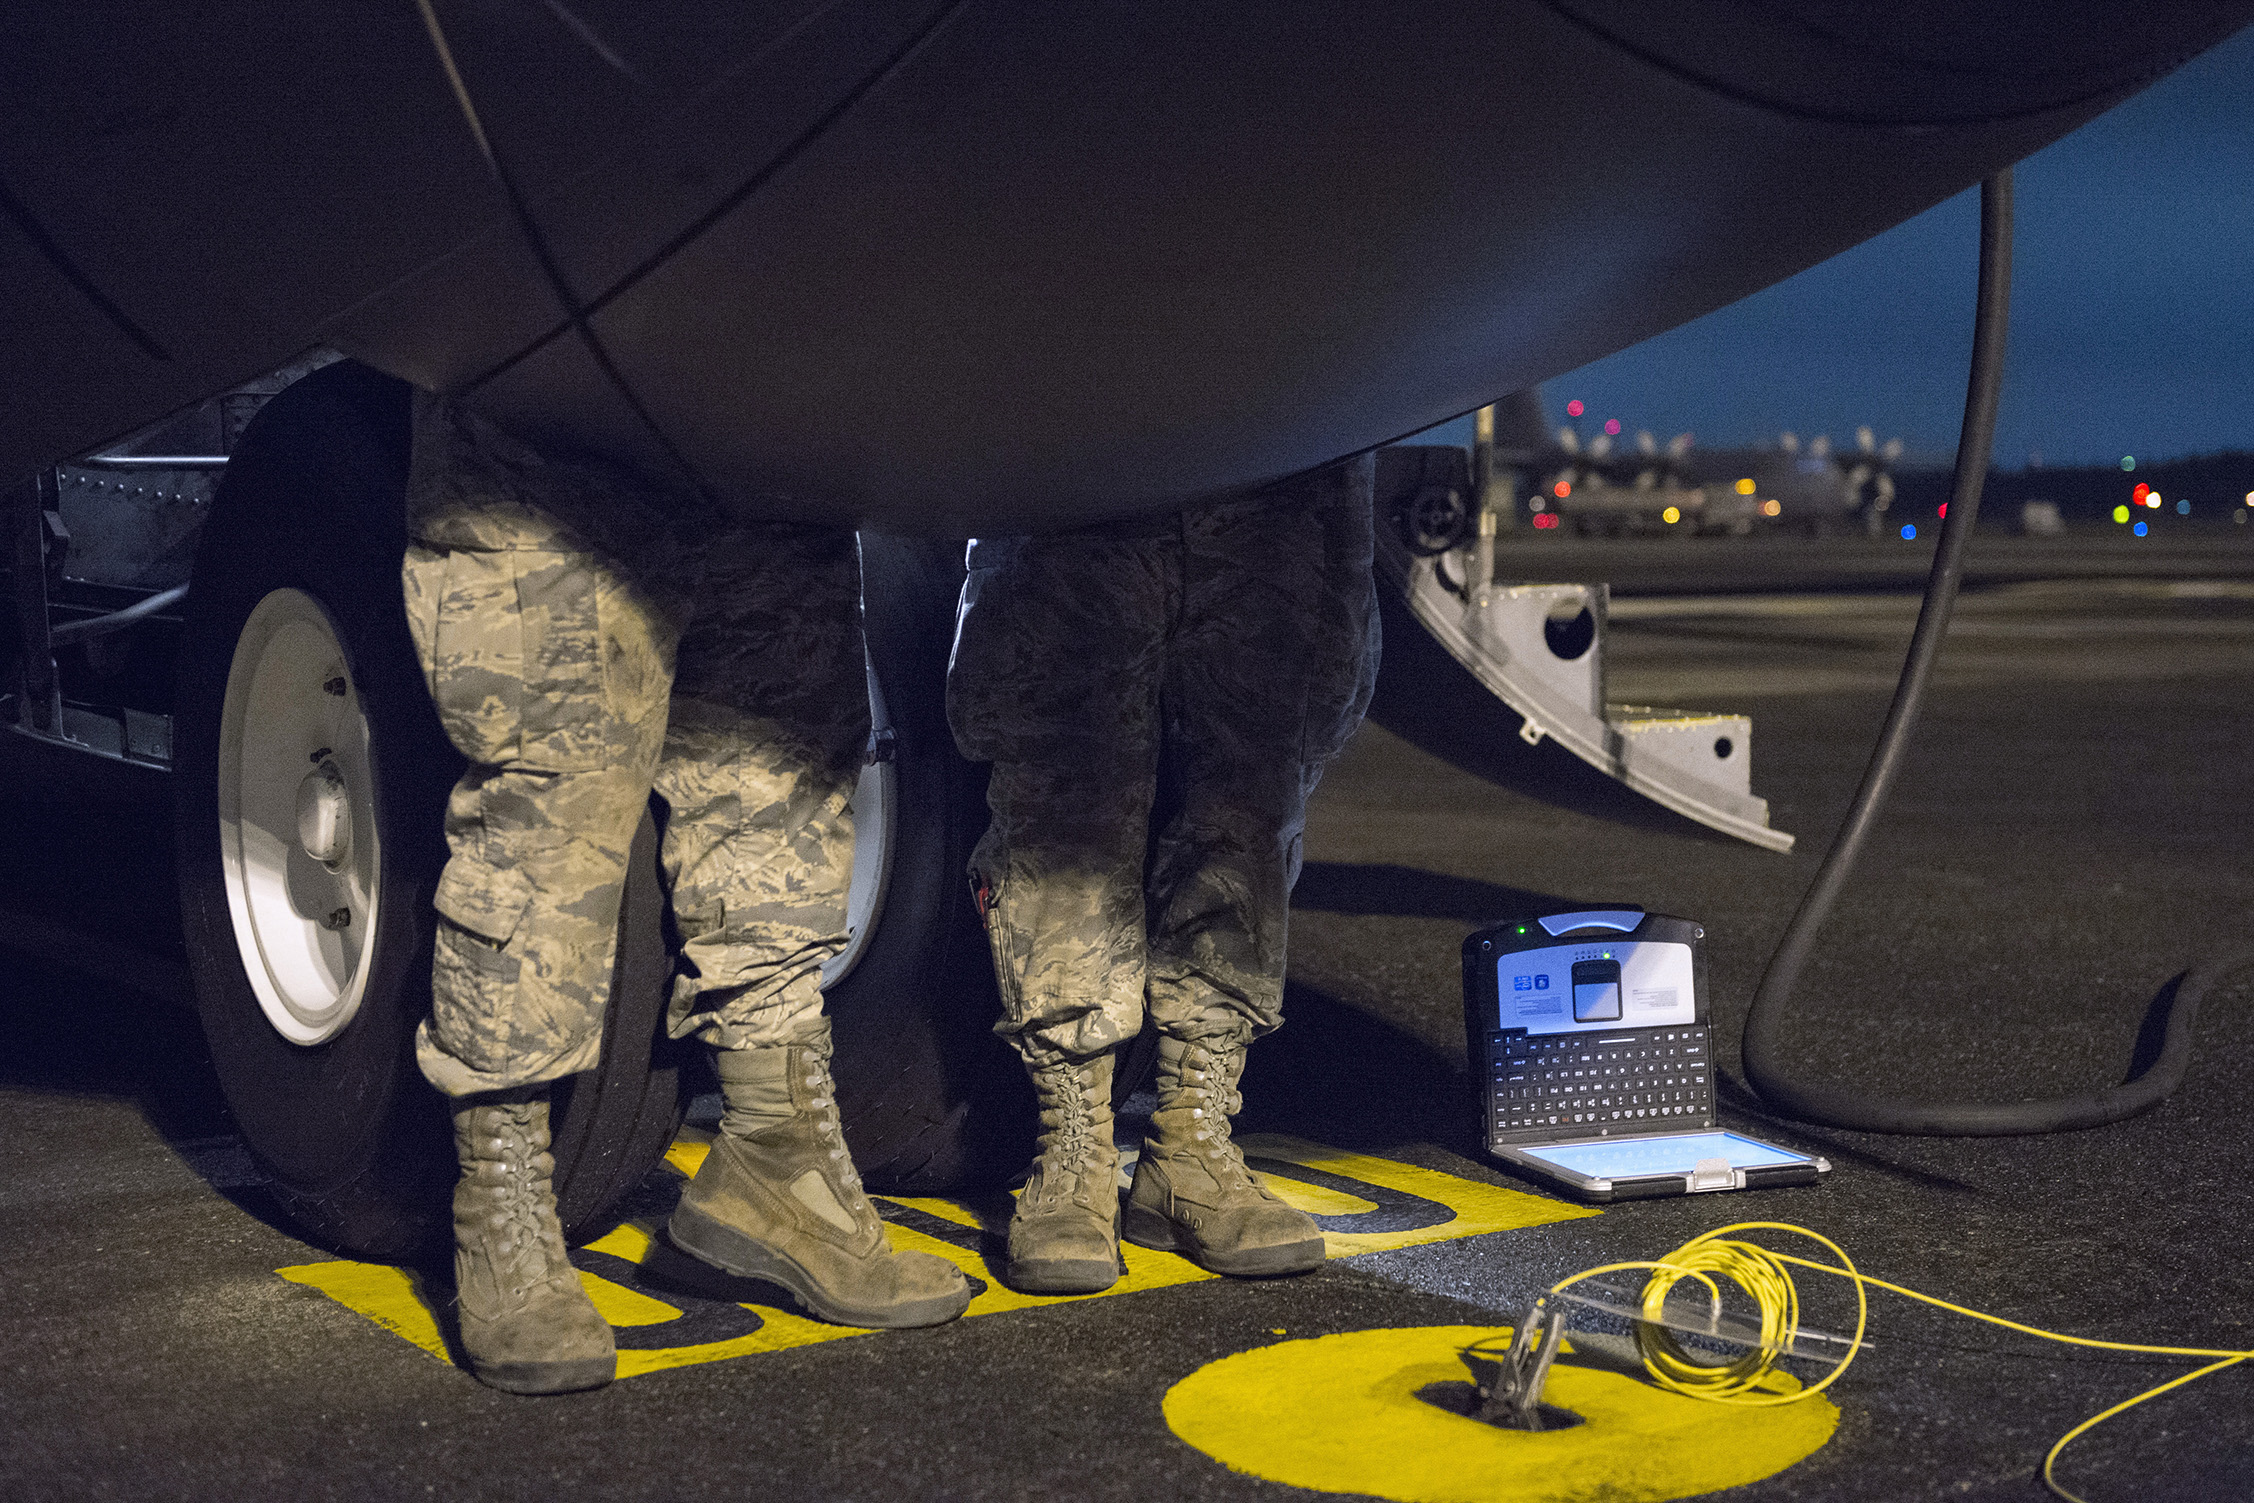 Airmen with the 374 Aircraft Maintenance Squadron inspect landing gear during VIGILANT ACE 16 at Yokota Air Base, Japan, Nov. 2, 2015. The inspection included checking the aircraft for overall working condition and giving it a 72-hour seal for approved flight. These scheduled inspections ensure the aircraft is safe and reliable and allow aircraft to quickly respond to contingencies. Yokota Airmen participating in VIGILANT ACE 16 train alongside aircrews flying different types of aircraft, practicing interoperability that enables aircrew members to be ready for many potential situations. (U.S. Air Force photo by Staff Sgt. Cody H. Ramirez/Released)